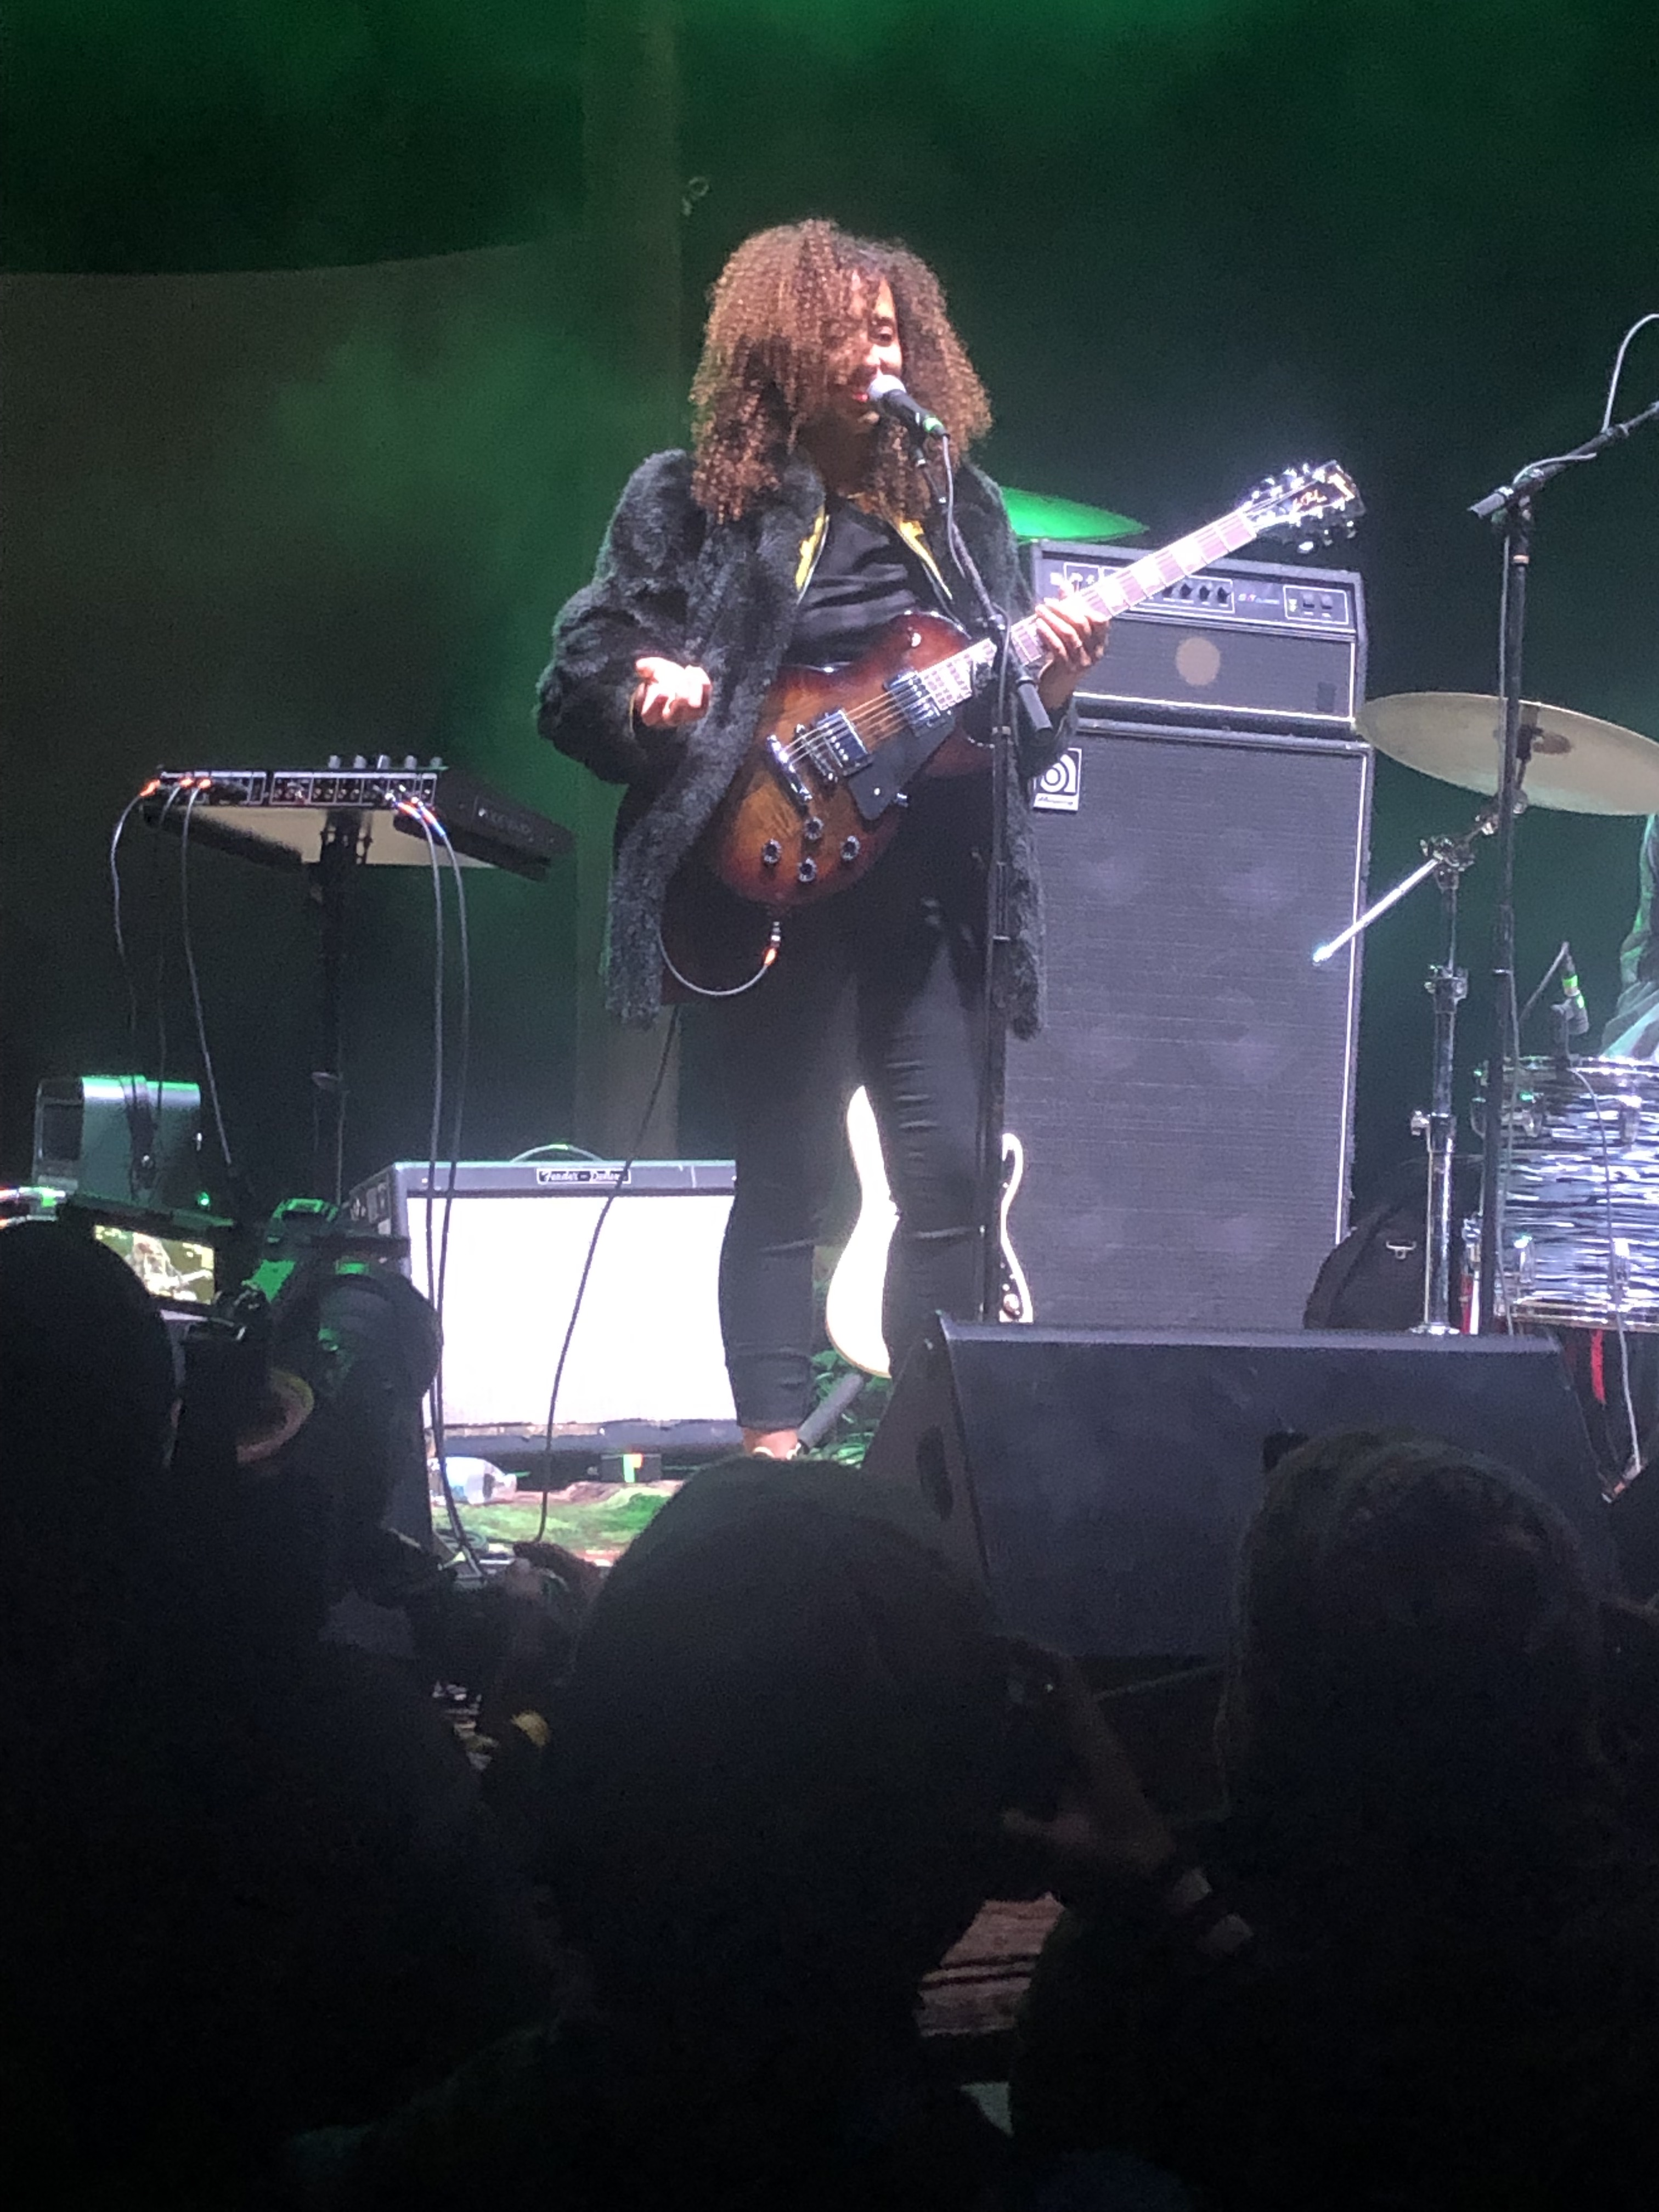 African-American female shrugging and wearing black pants, black shirt, and black coat while holding a guitar on an evening stage.